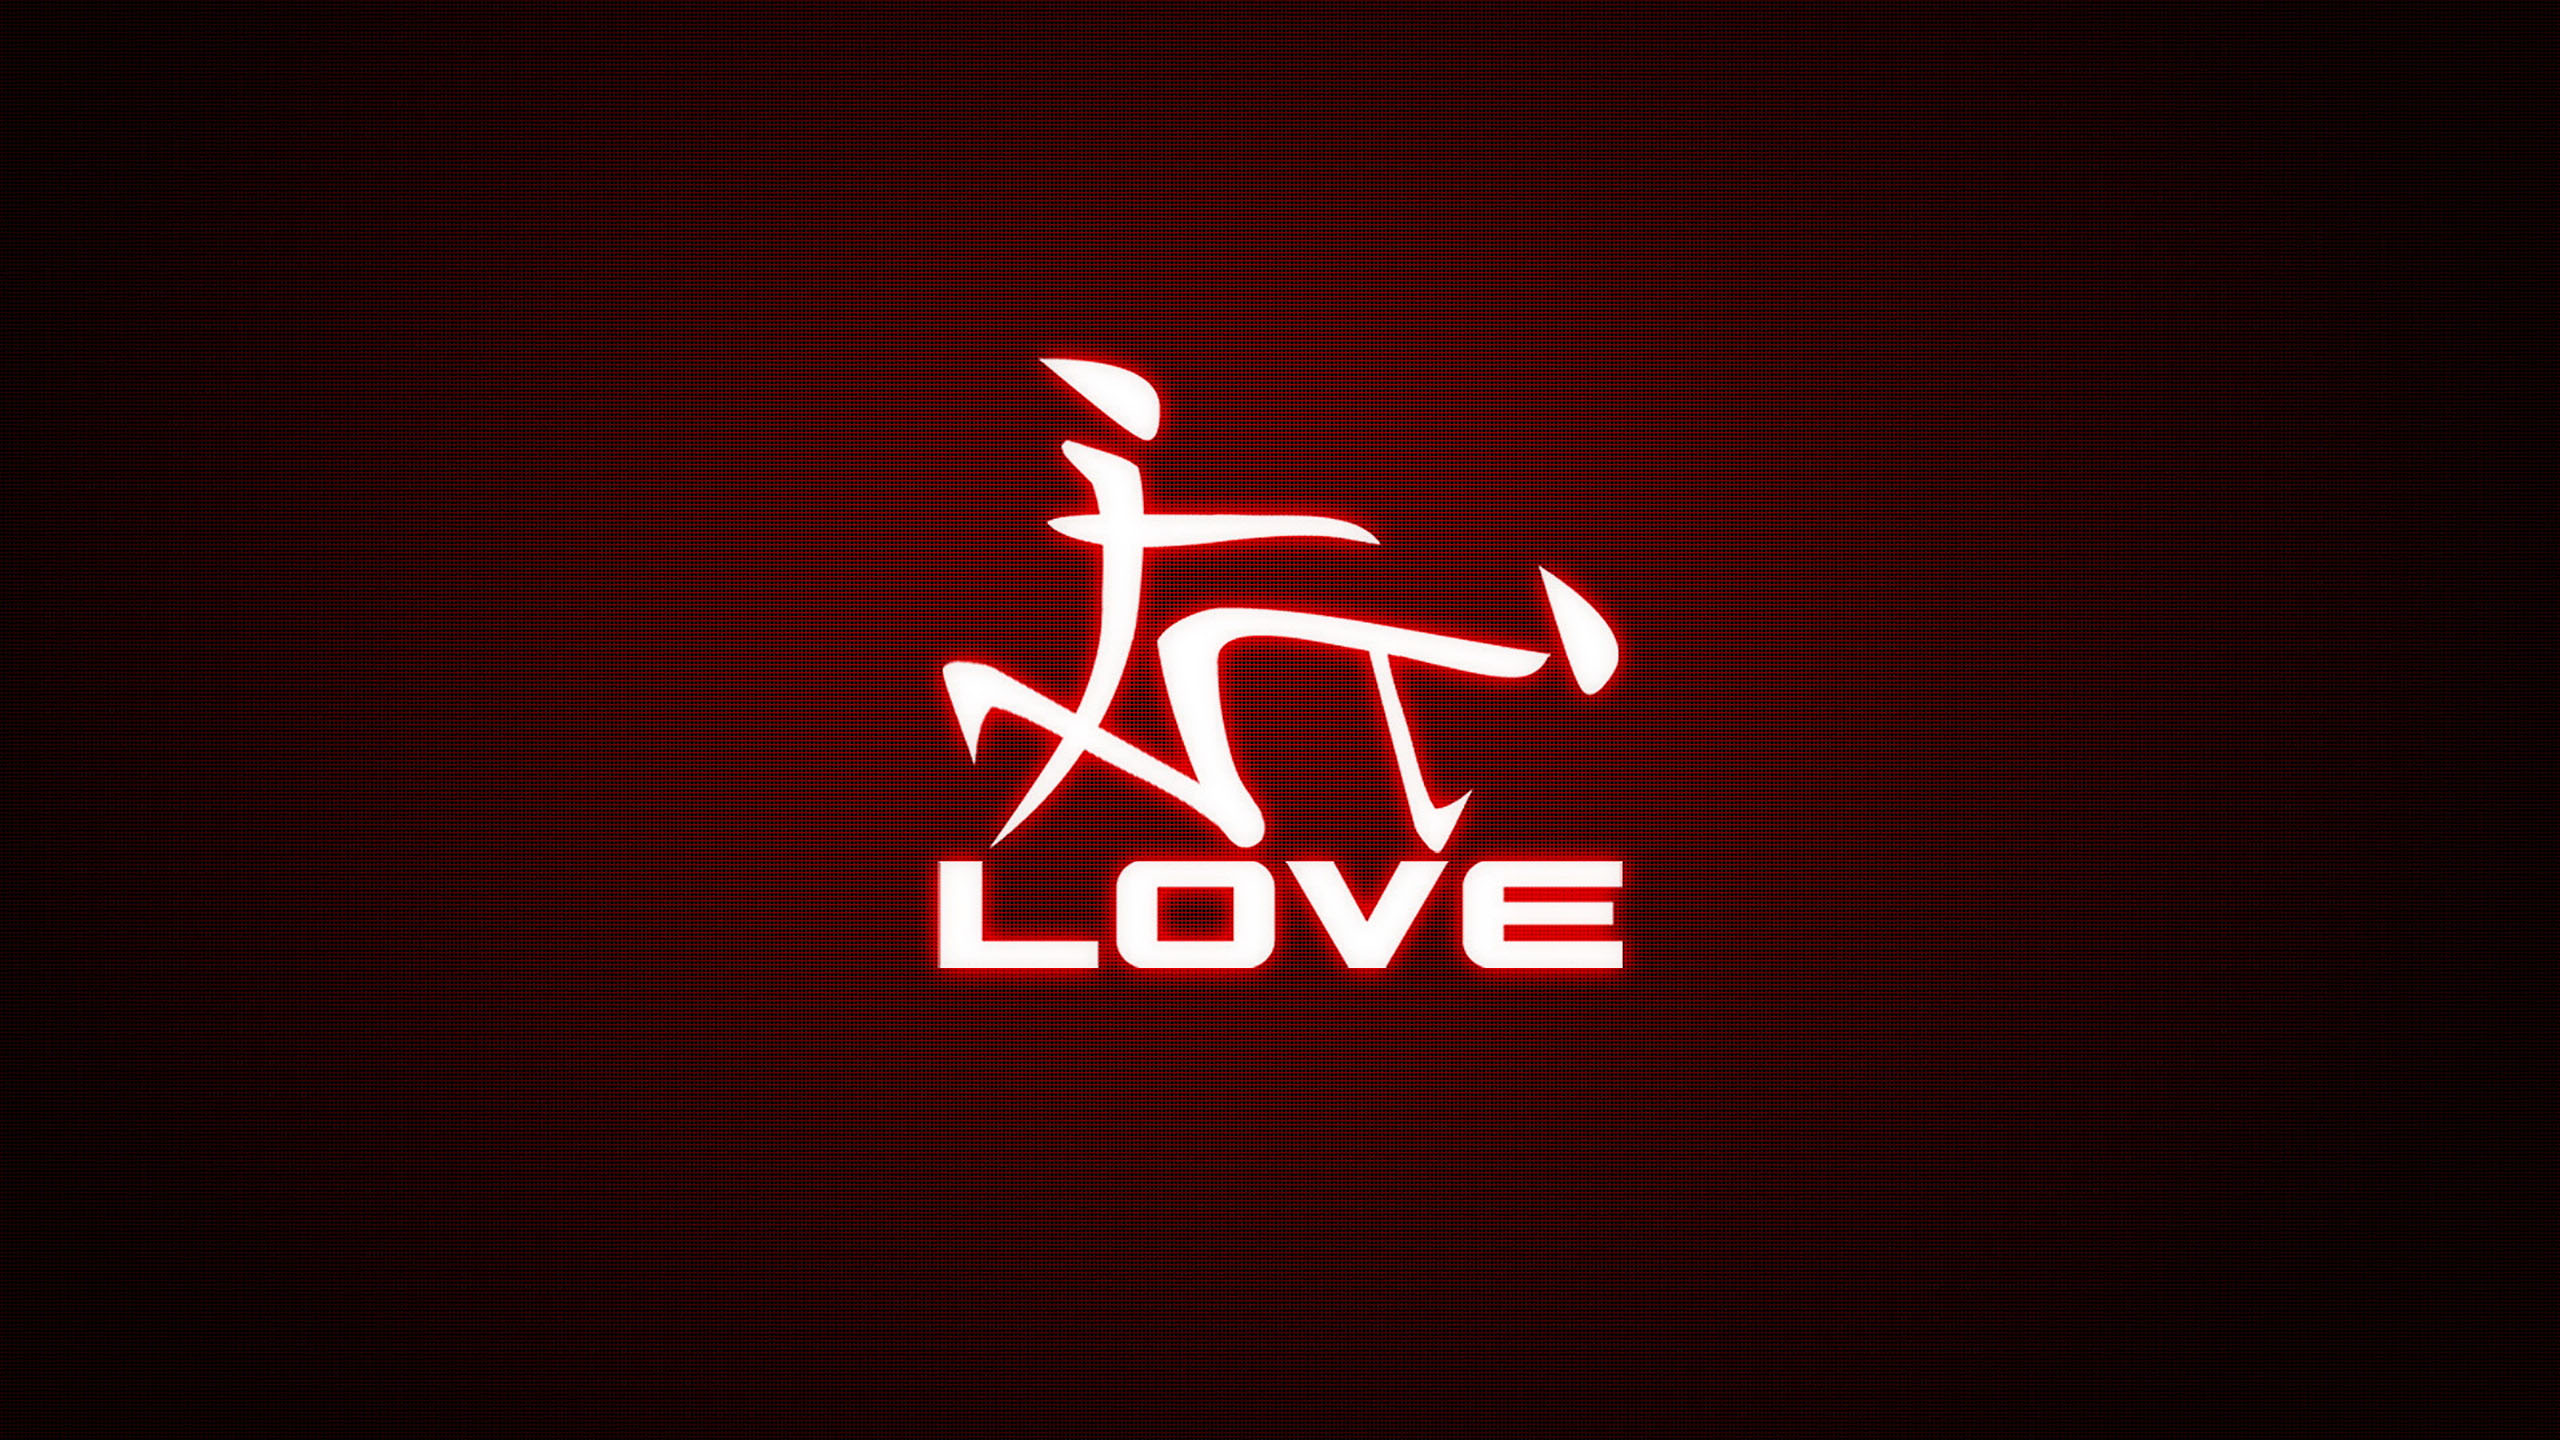 Love-http-1080-net-love-html-wallpaper-wp3807805